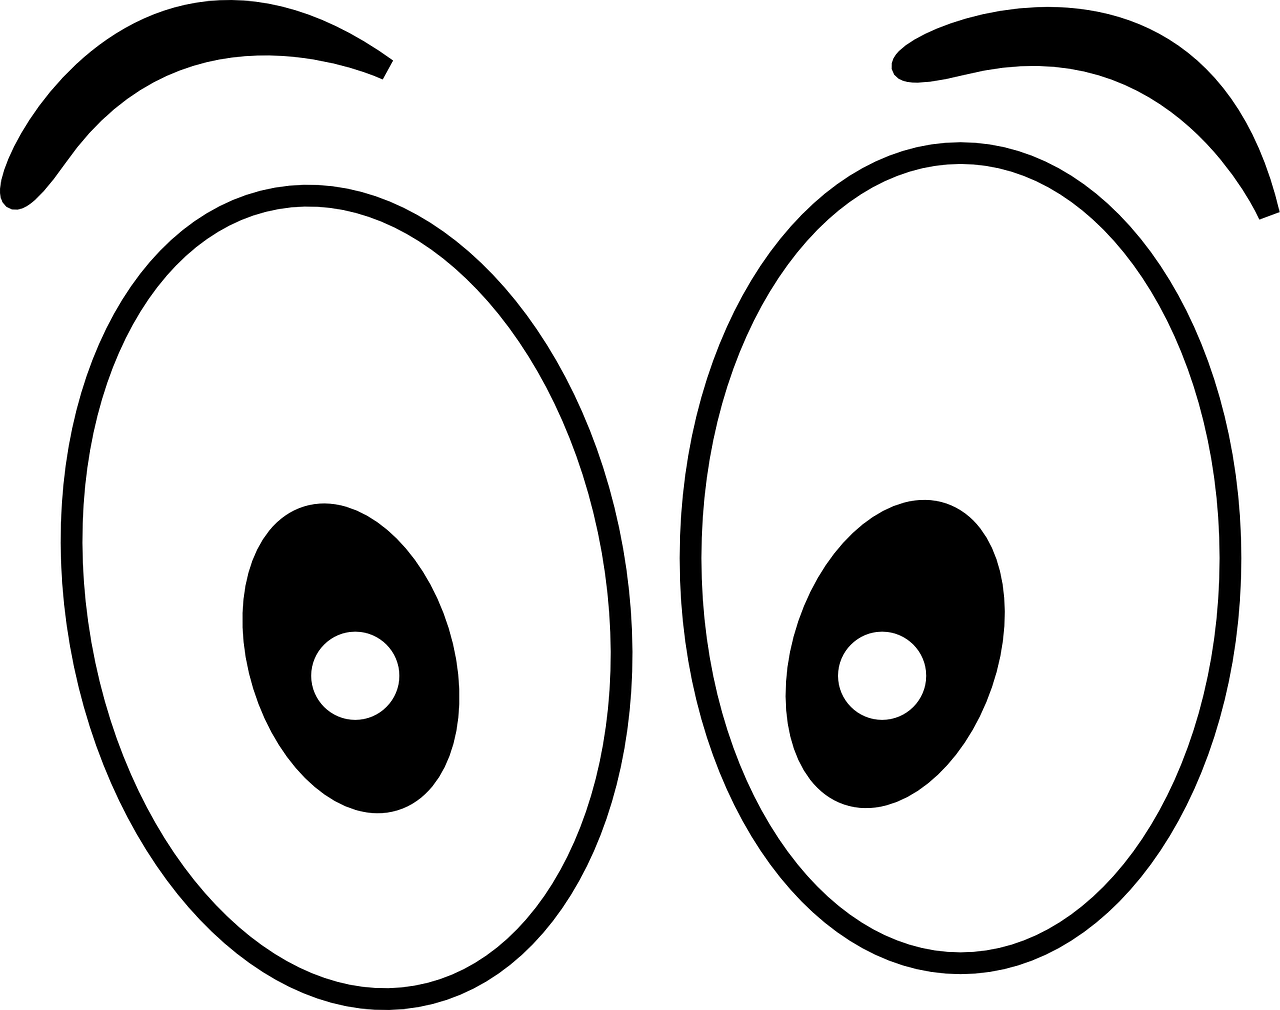 Turkey eyes mouth clipart image black and white download Hazel Eyes Clipart Happy Eye Free collection | Download and share ... image black and white download